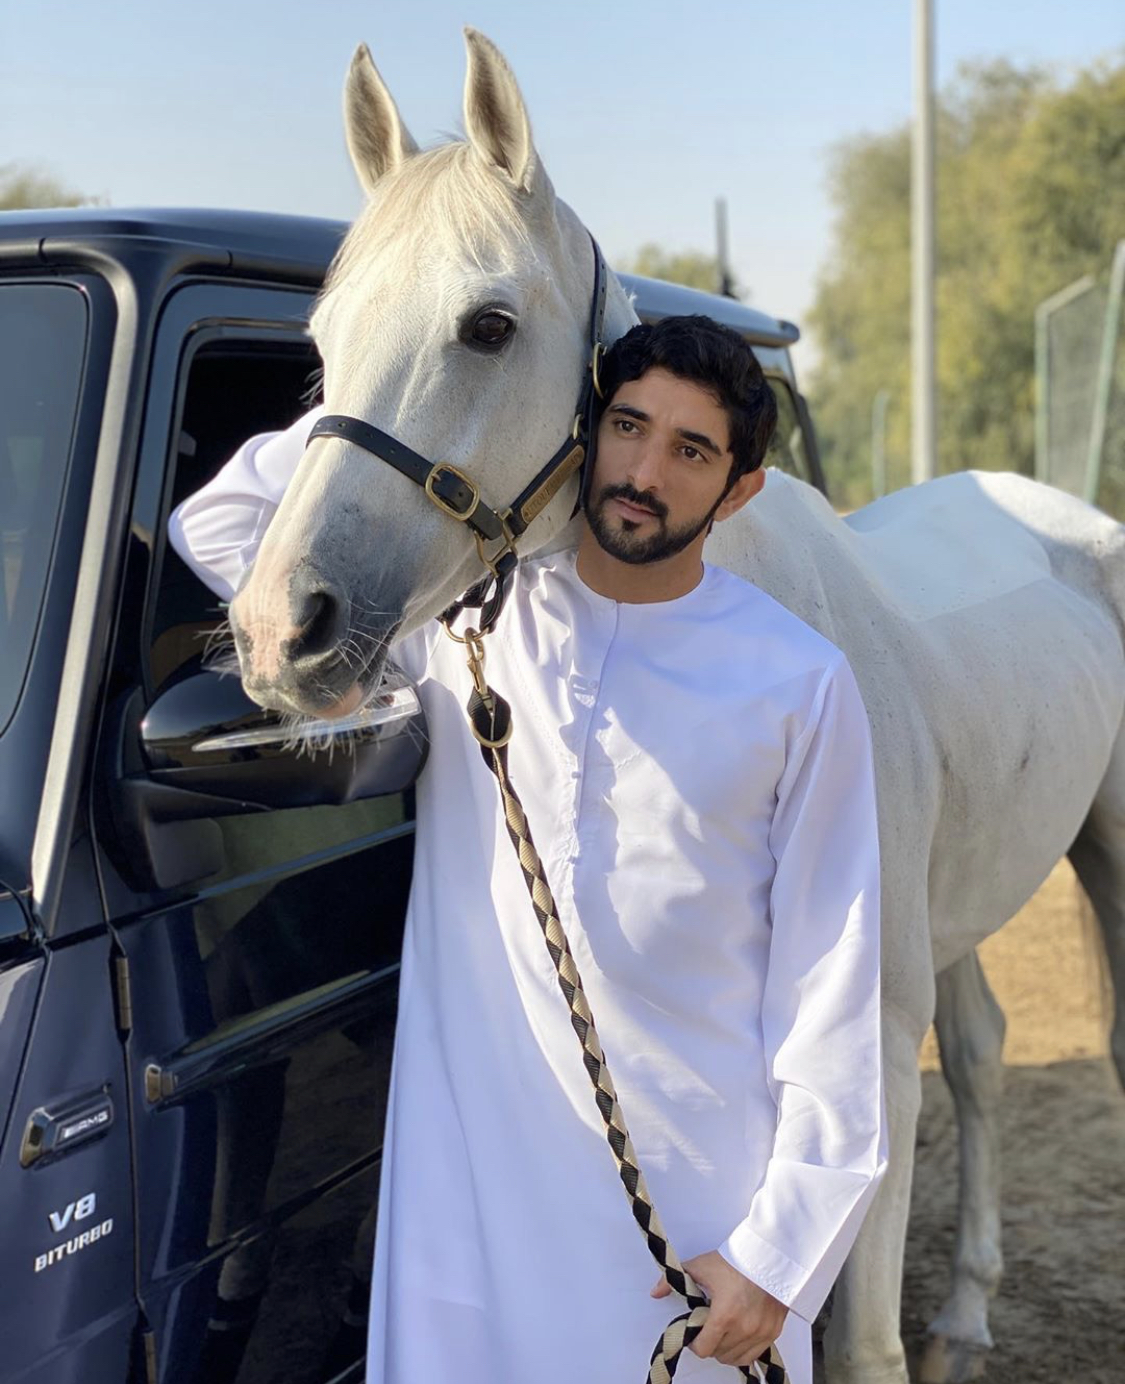 Sheikh Hamdan Shared An Emotional Letter To All COVID-19 Frontline Workers